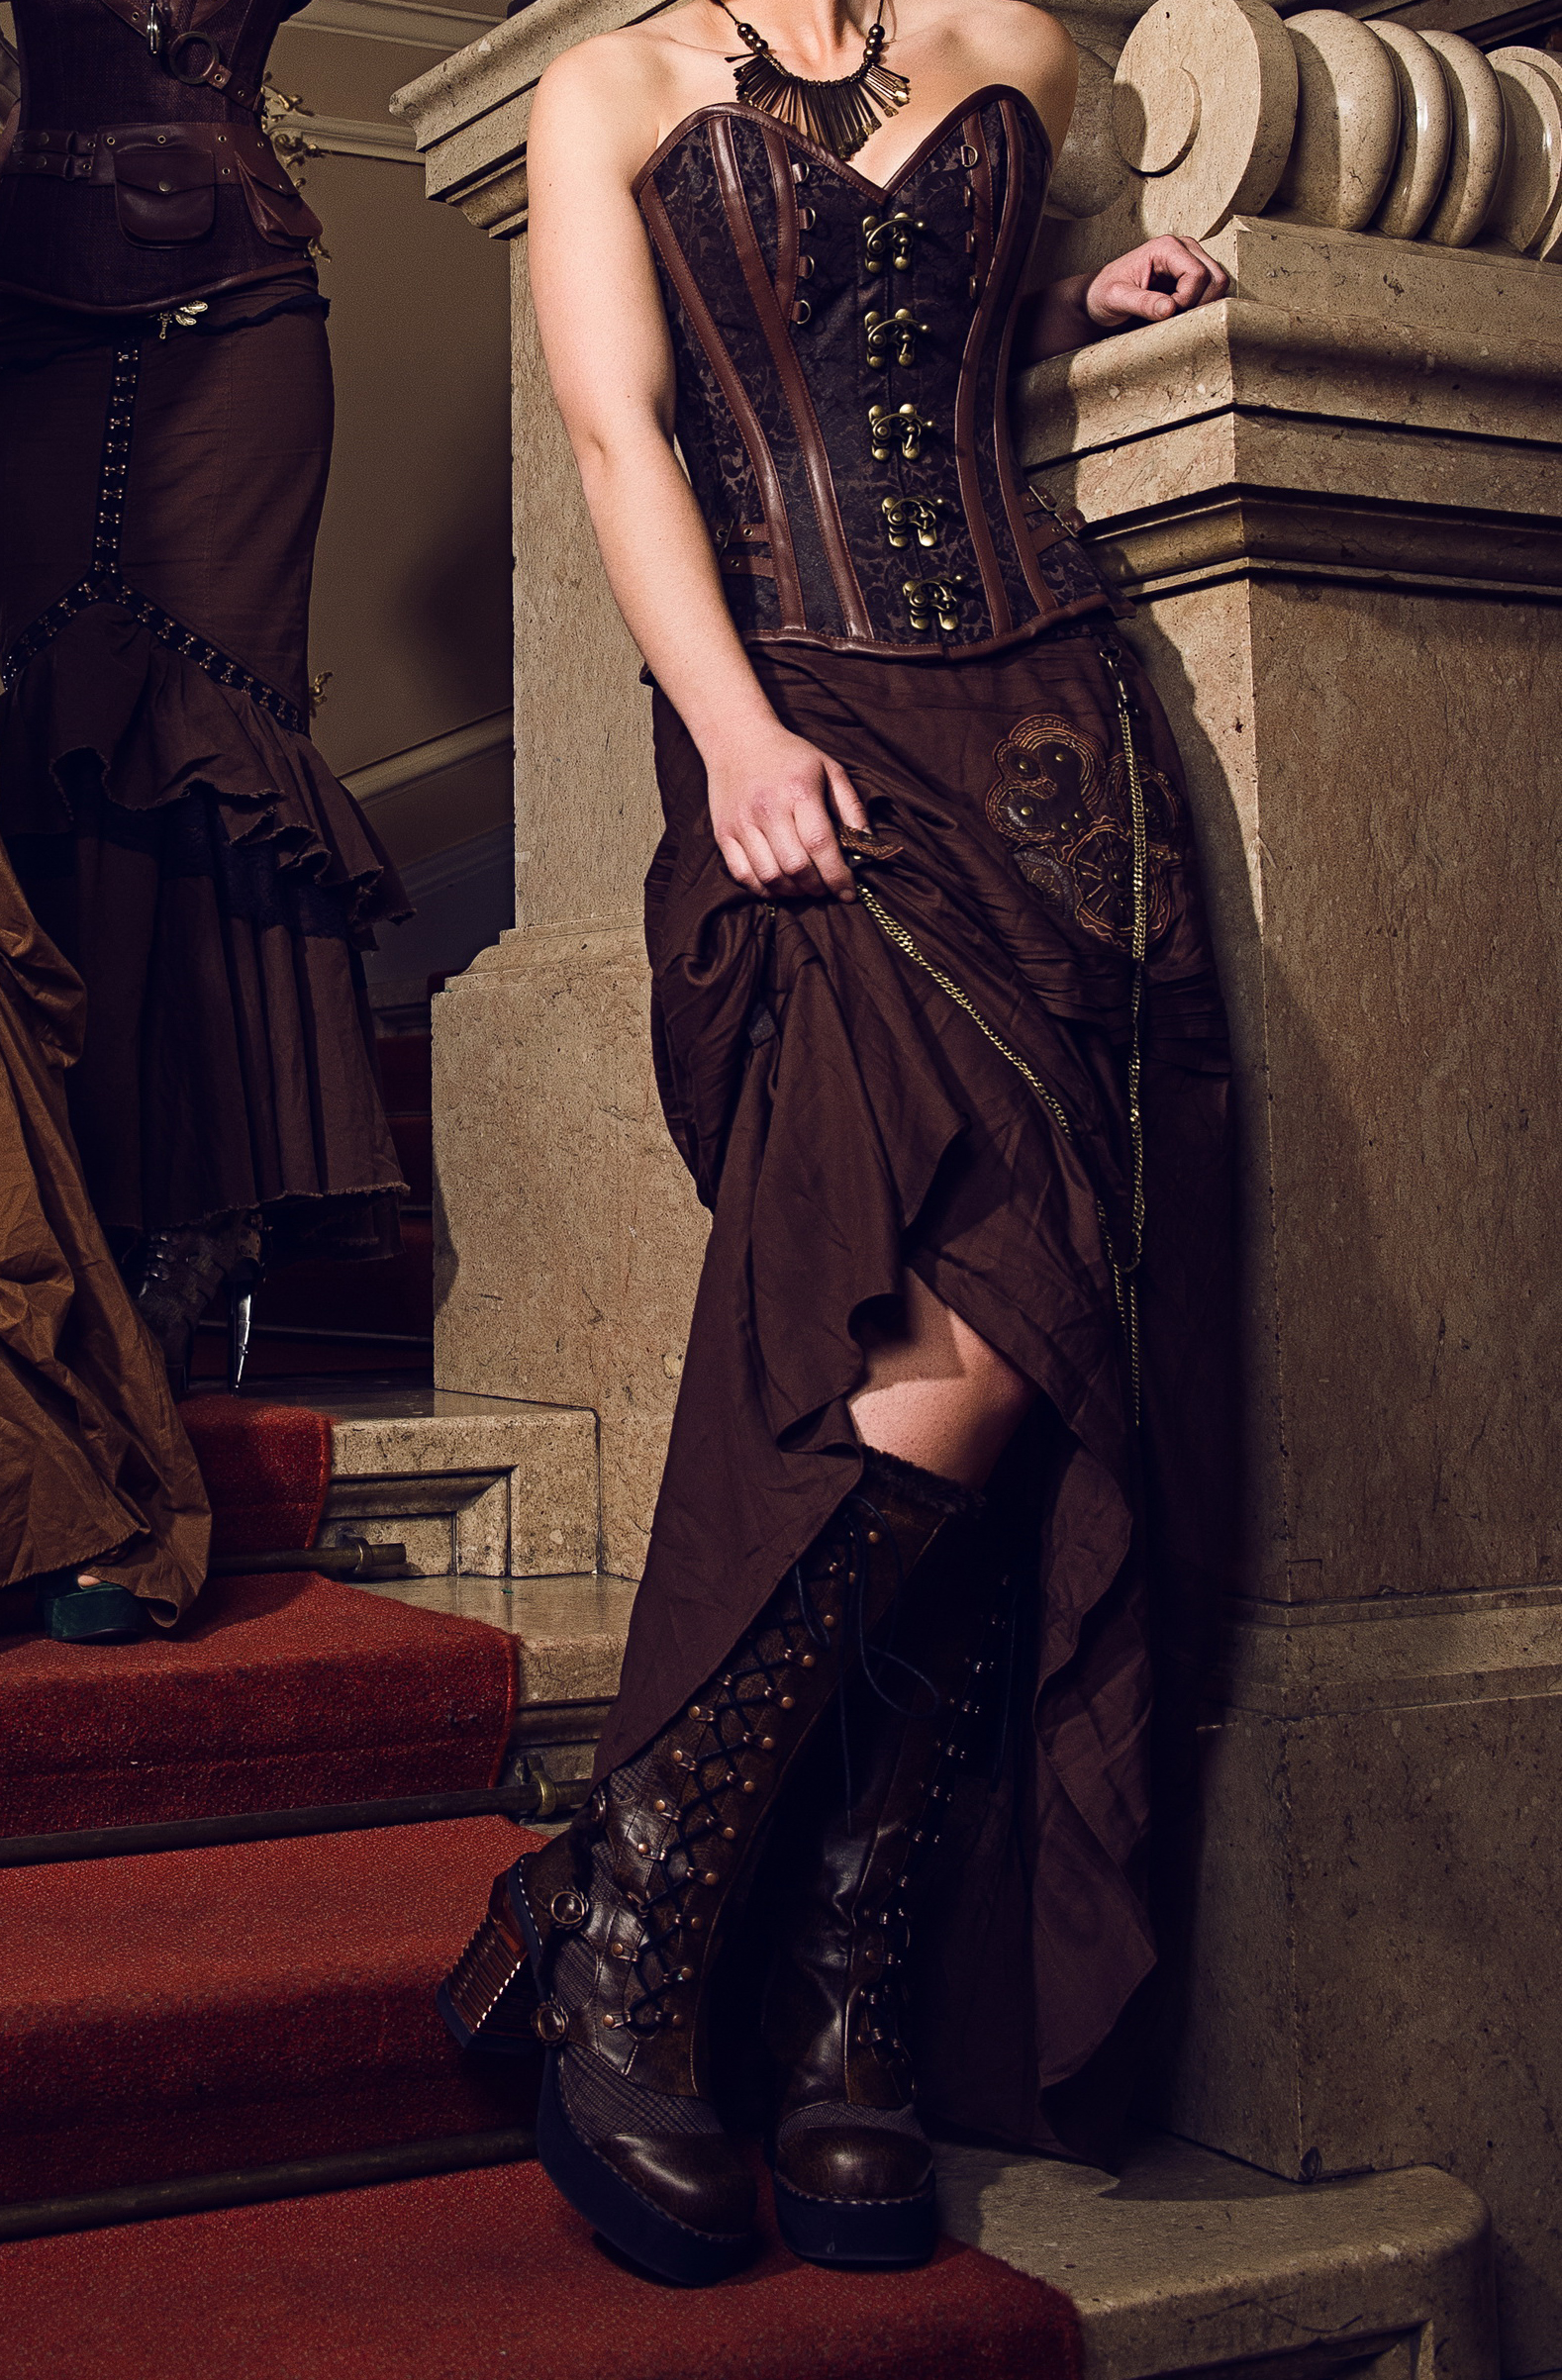 black_or_brown_steampunk_langdon_hades_goth_platform_heel_boots_9_to_ship_boots_2.jpg